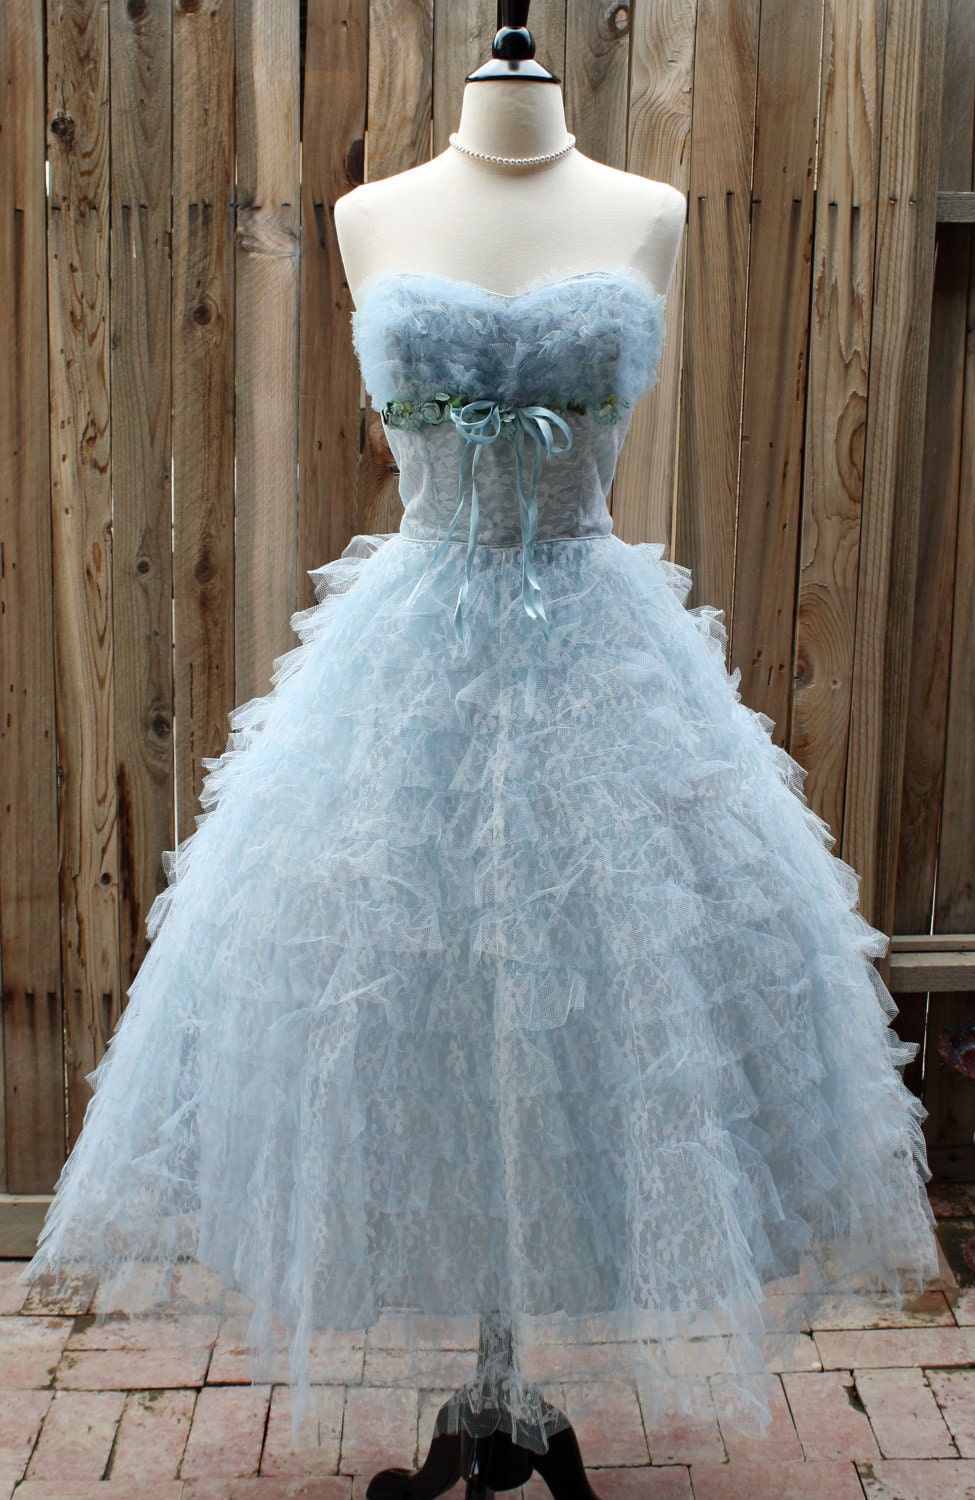 Baby Blue And White 10 Year Bedrooms: 1950s Vintage Baby Blue Tulle Lace Sweetheart Gown / Princess